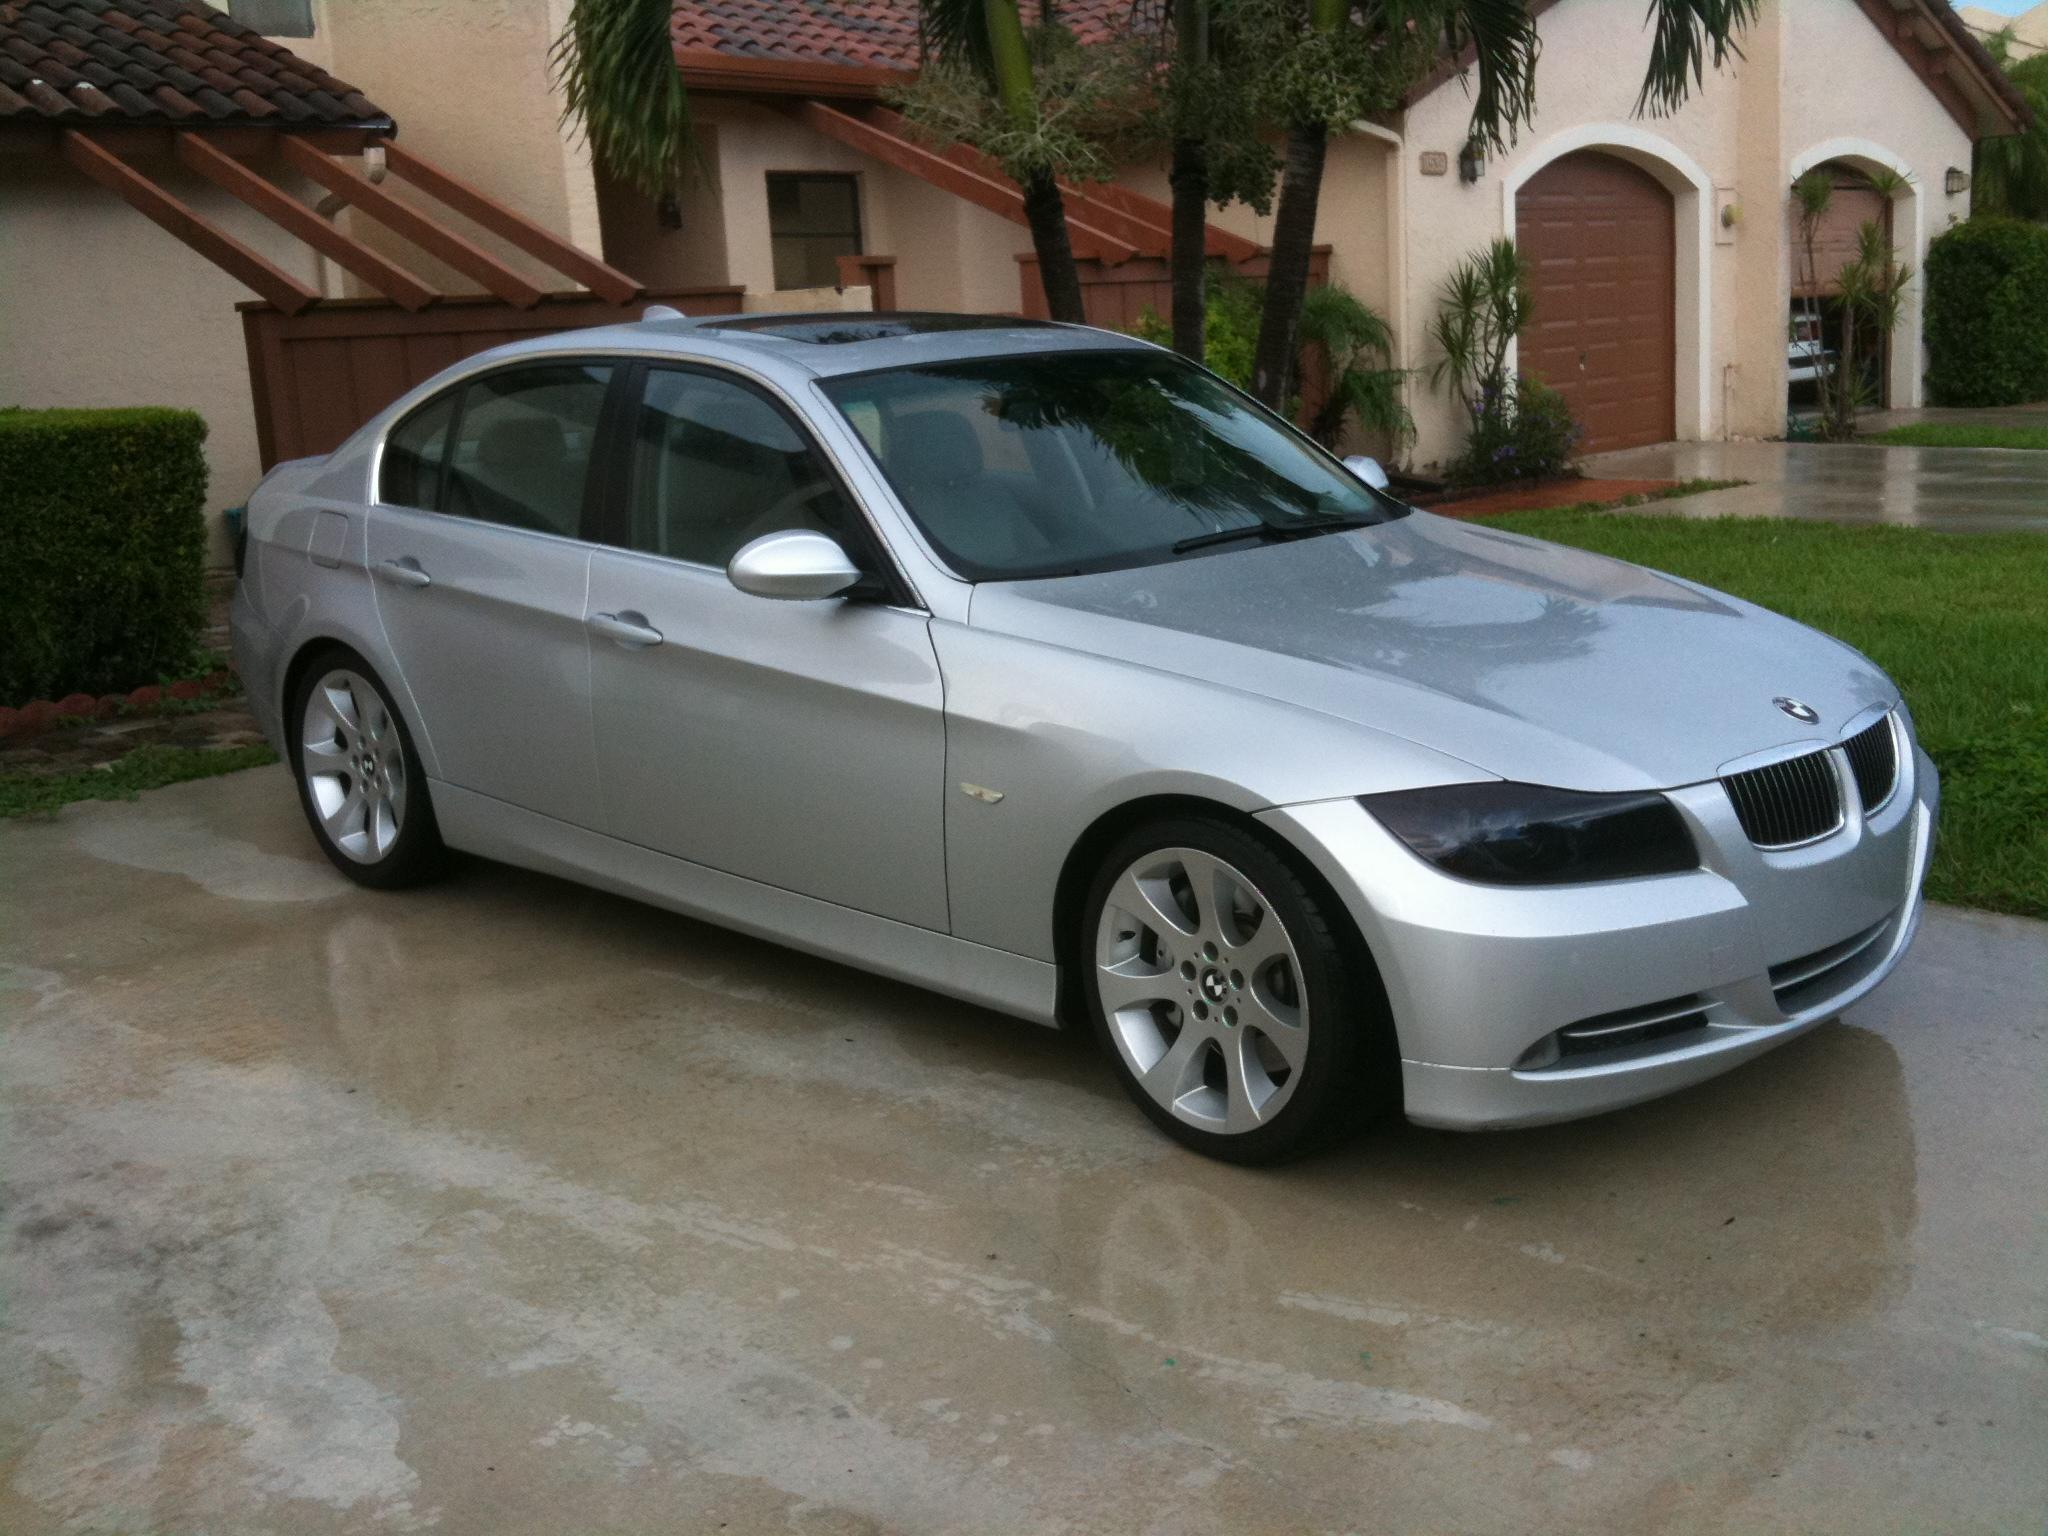 rambo82 2007 bmw 3 series335i sedan 4d specs photos modification info at cardomain. Black Bedroom Furniture Sets. Home Design Ideas